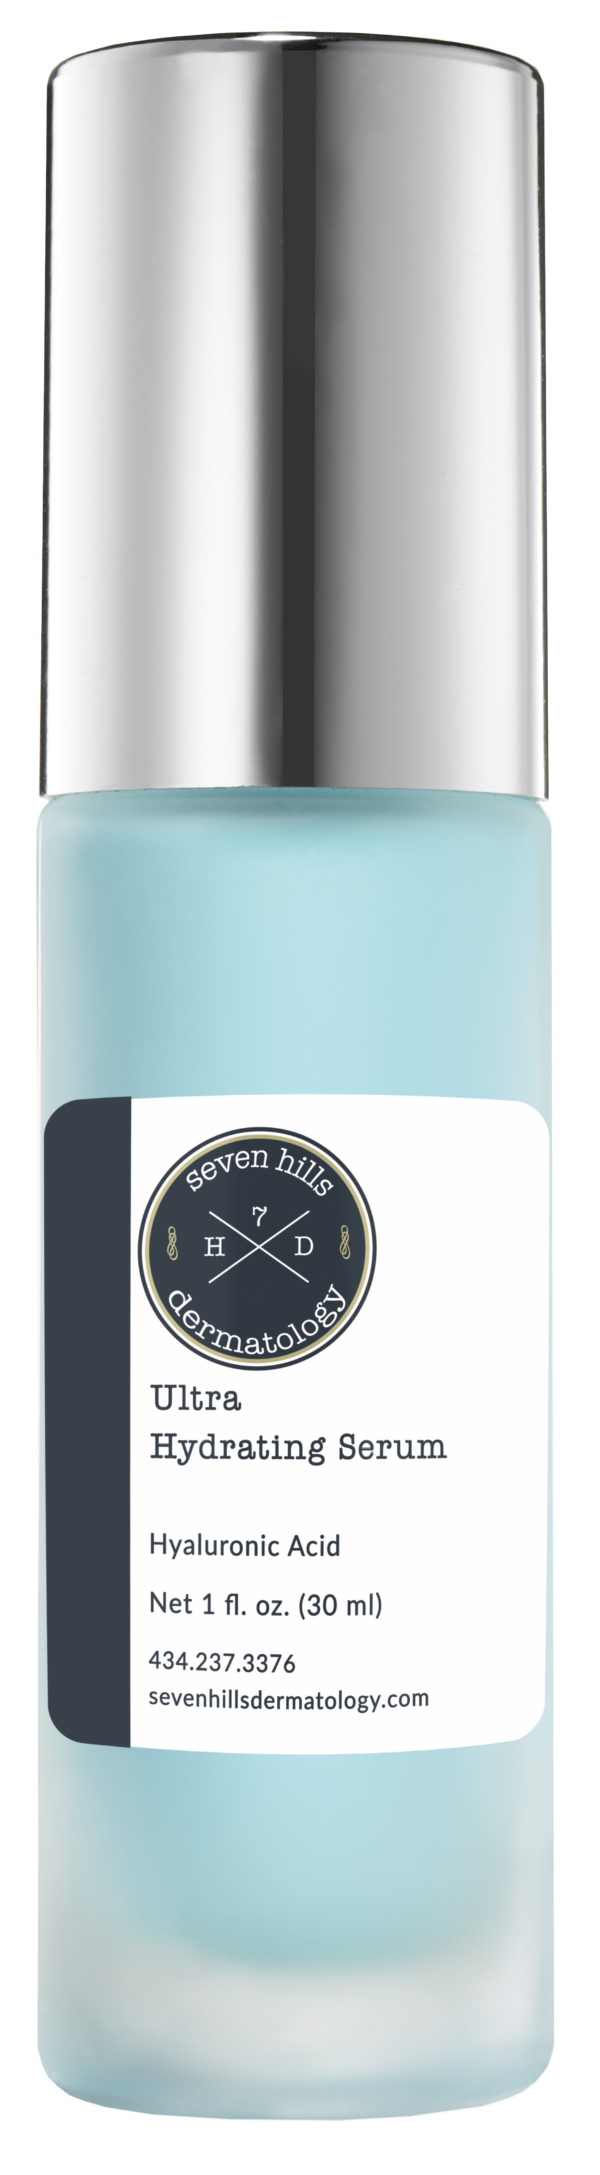 A blue container that reads: Ultra Hydrating Serum